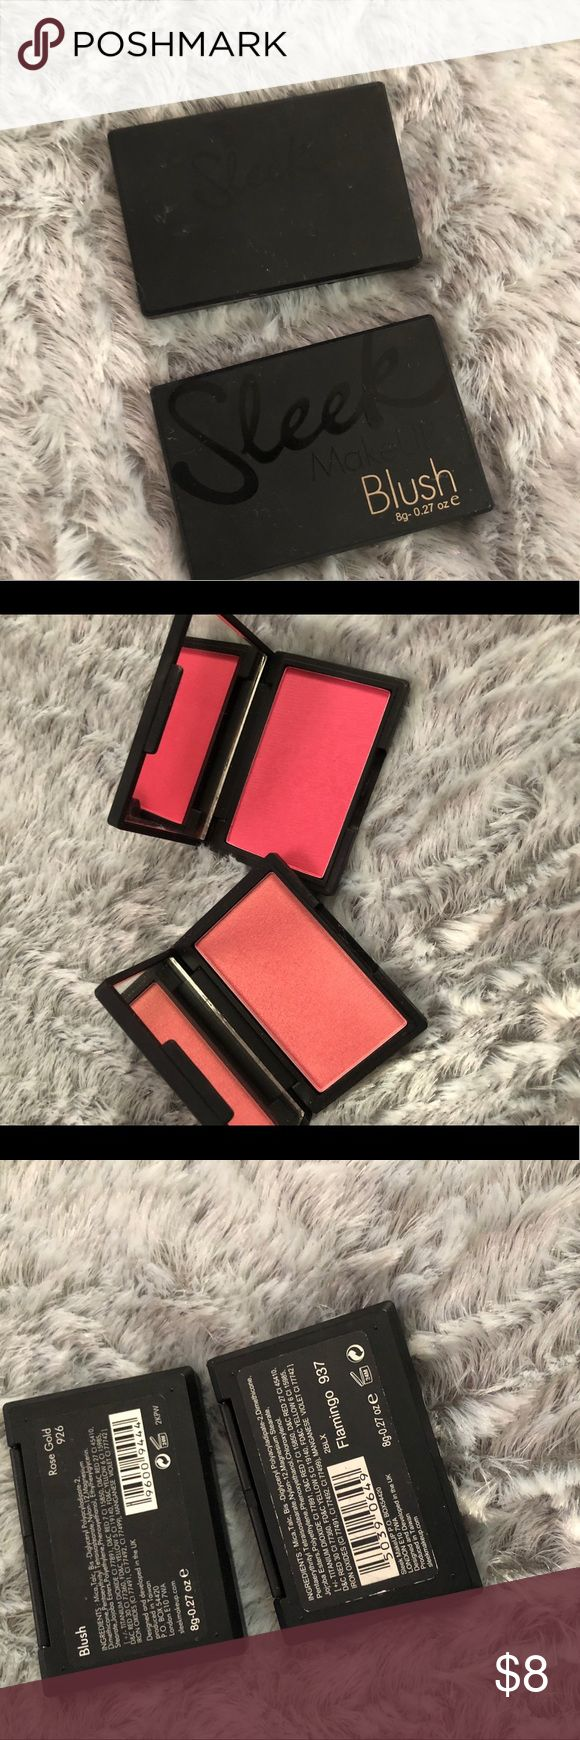 Sleek blushes Selling sleek blushes in Rose gold- dupe for nars orgasm and flamingo- very pigmented bright pink blush- a little goes a long way Sleek Makeup Blush